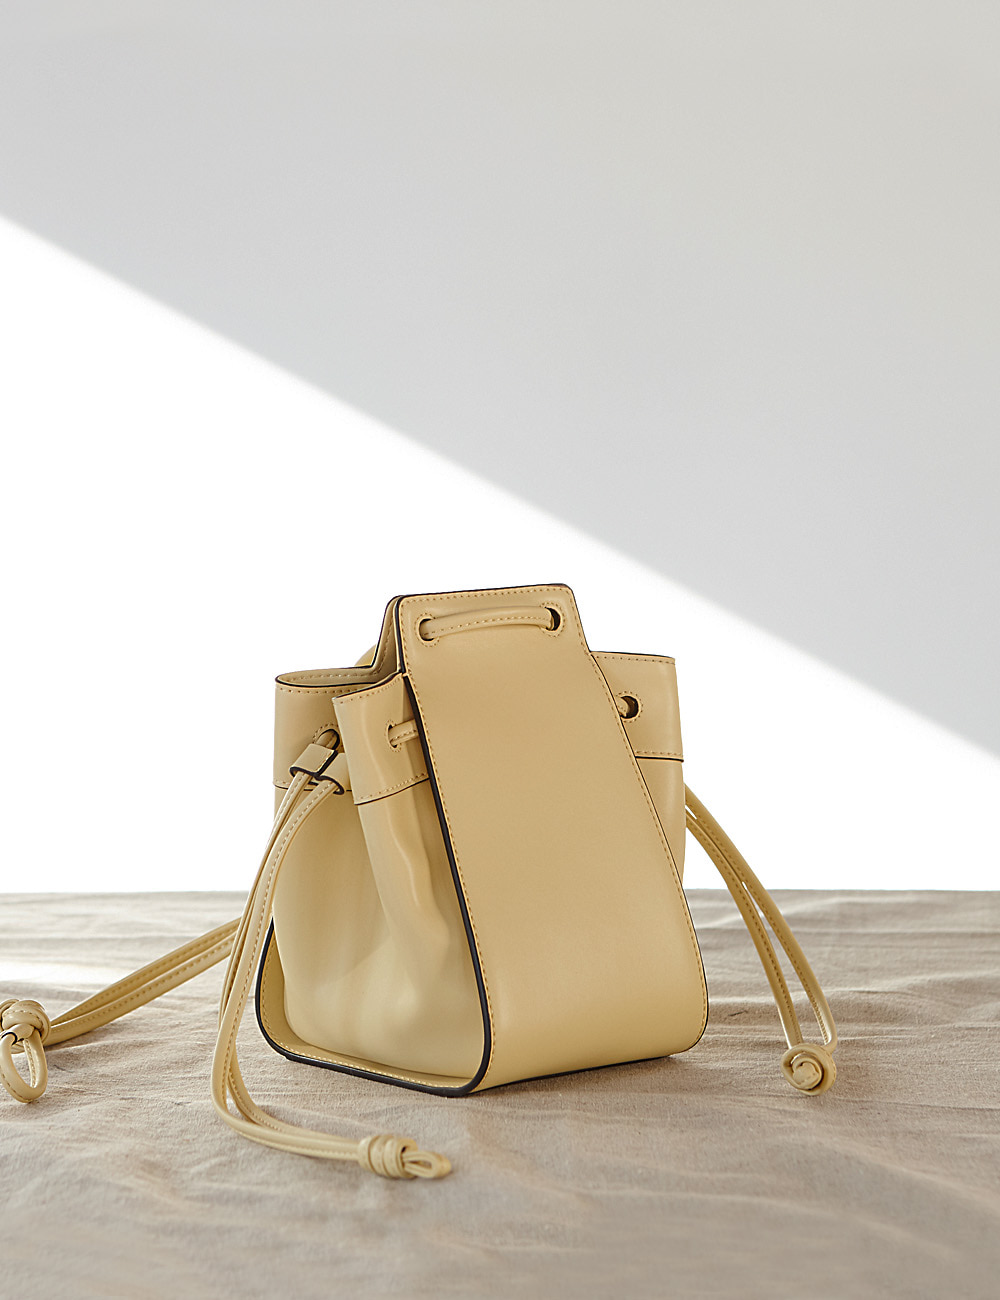 MAISON246,246 AME BAG - LIGHT YELLOW,No.246